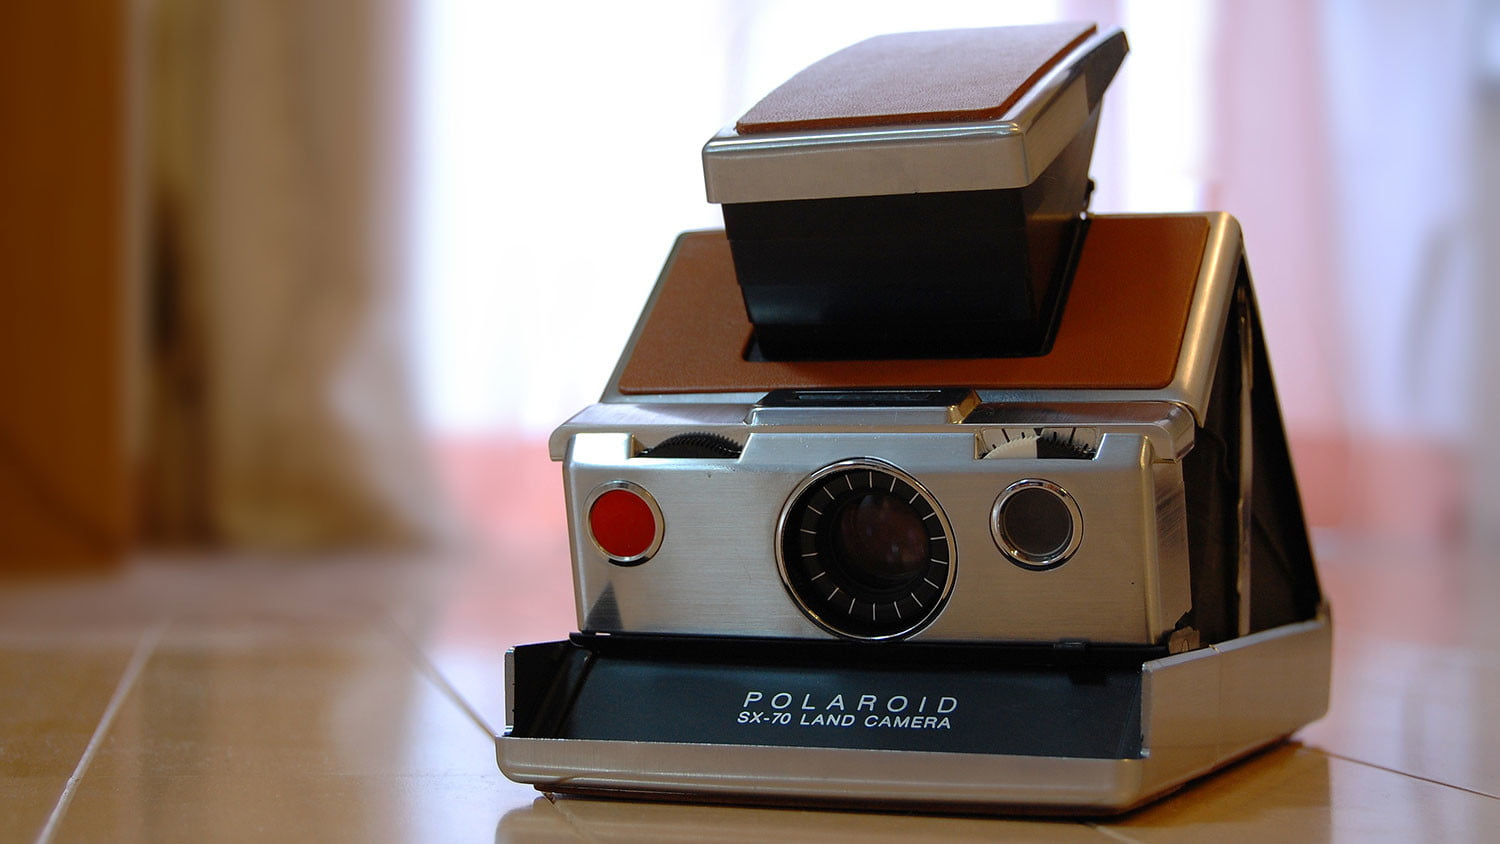 Blast from the past: A look inside Polaroid's SX-70 instant film camera